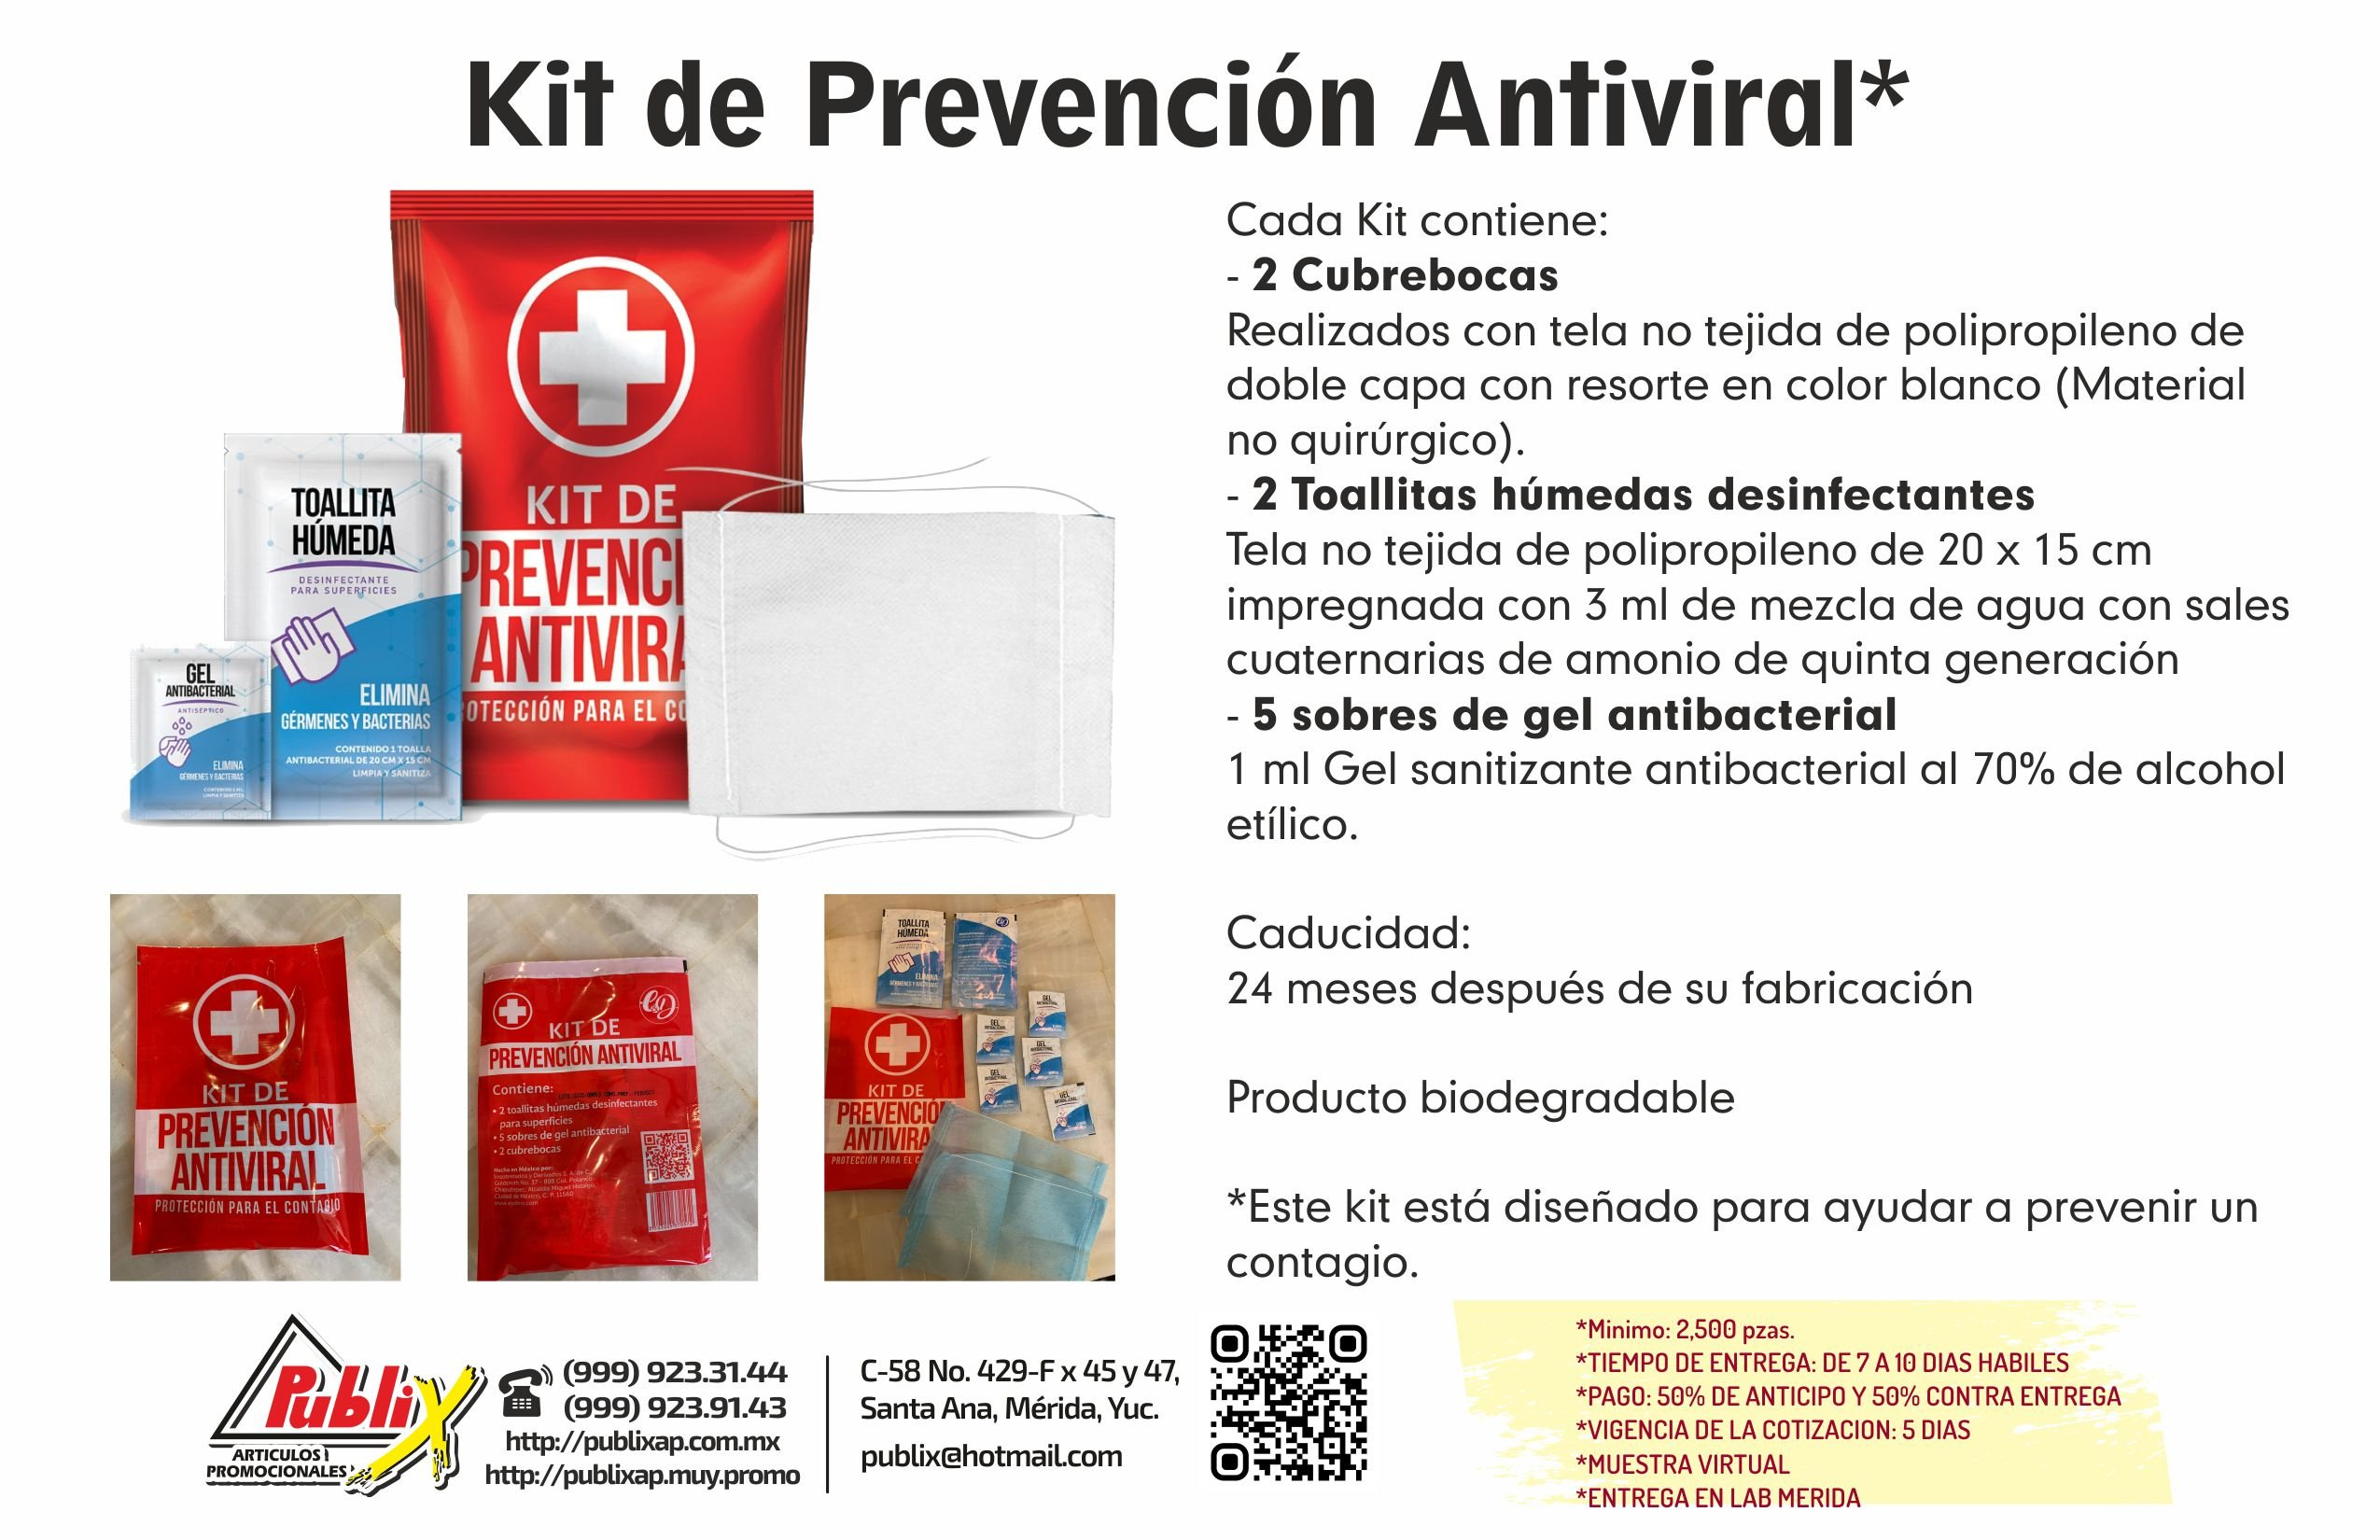 https://0201.nccdn.net/1_2/000/000/17d/7d3/Flyer-Kit-Antiviral.jpg